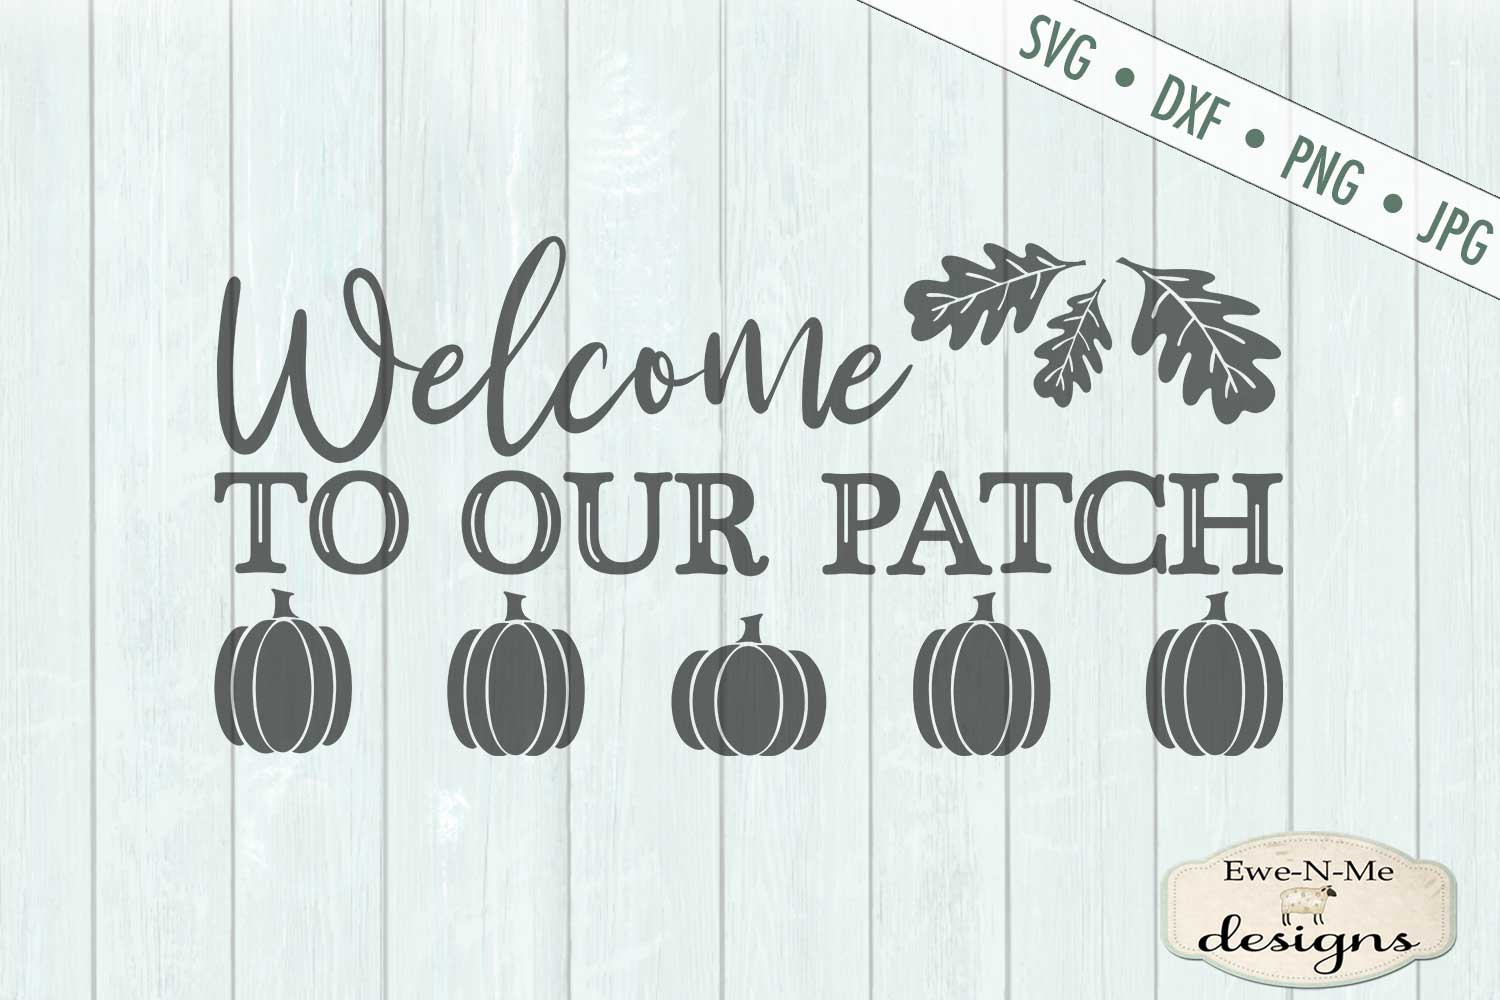 Welcome To Our Patch - Pumpkin Patch - Fall Autumn SVG DXF example image 2